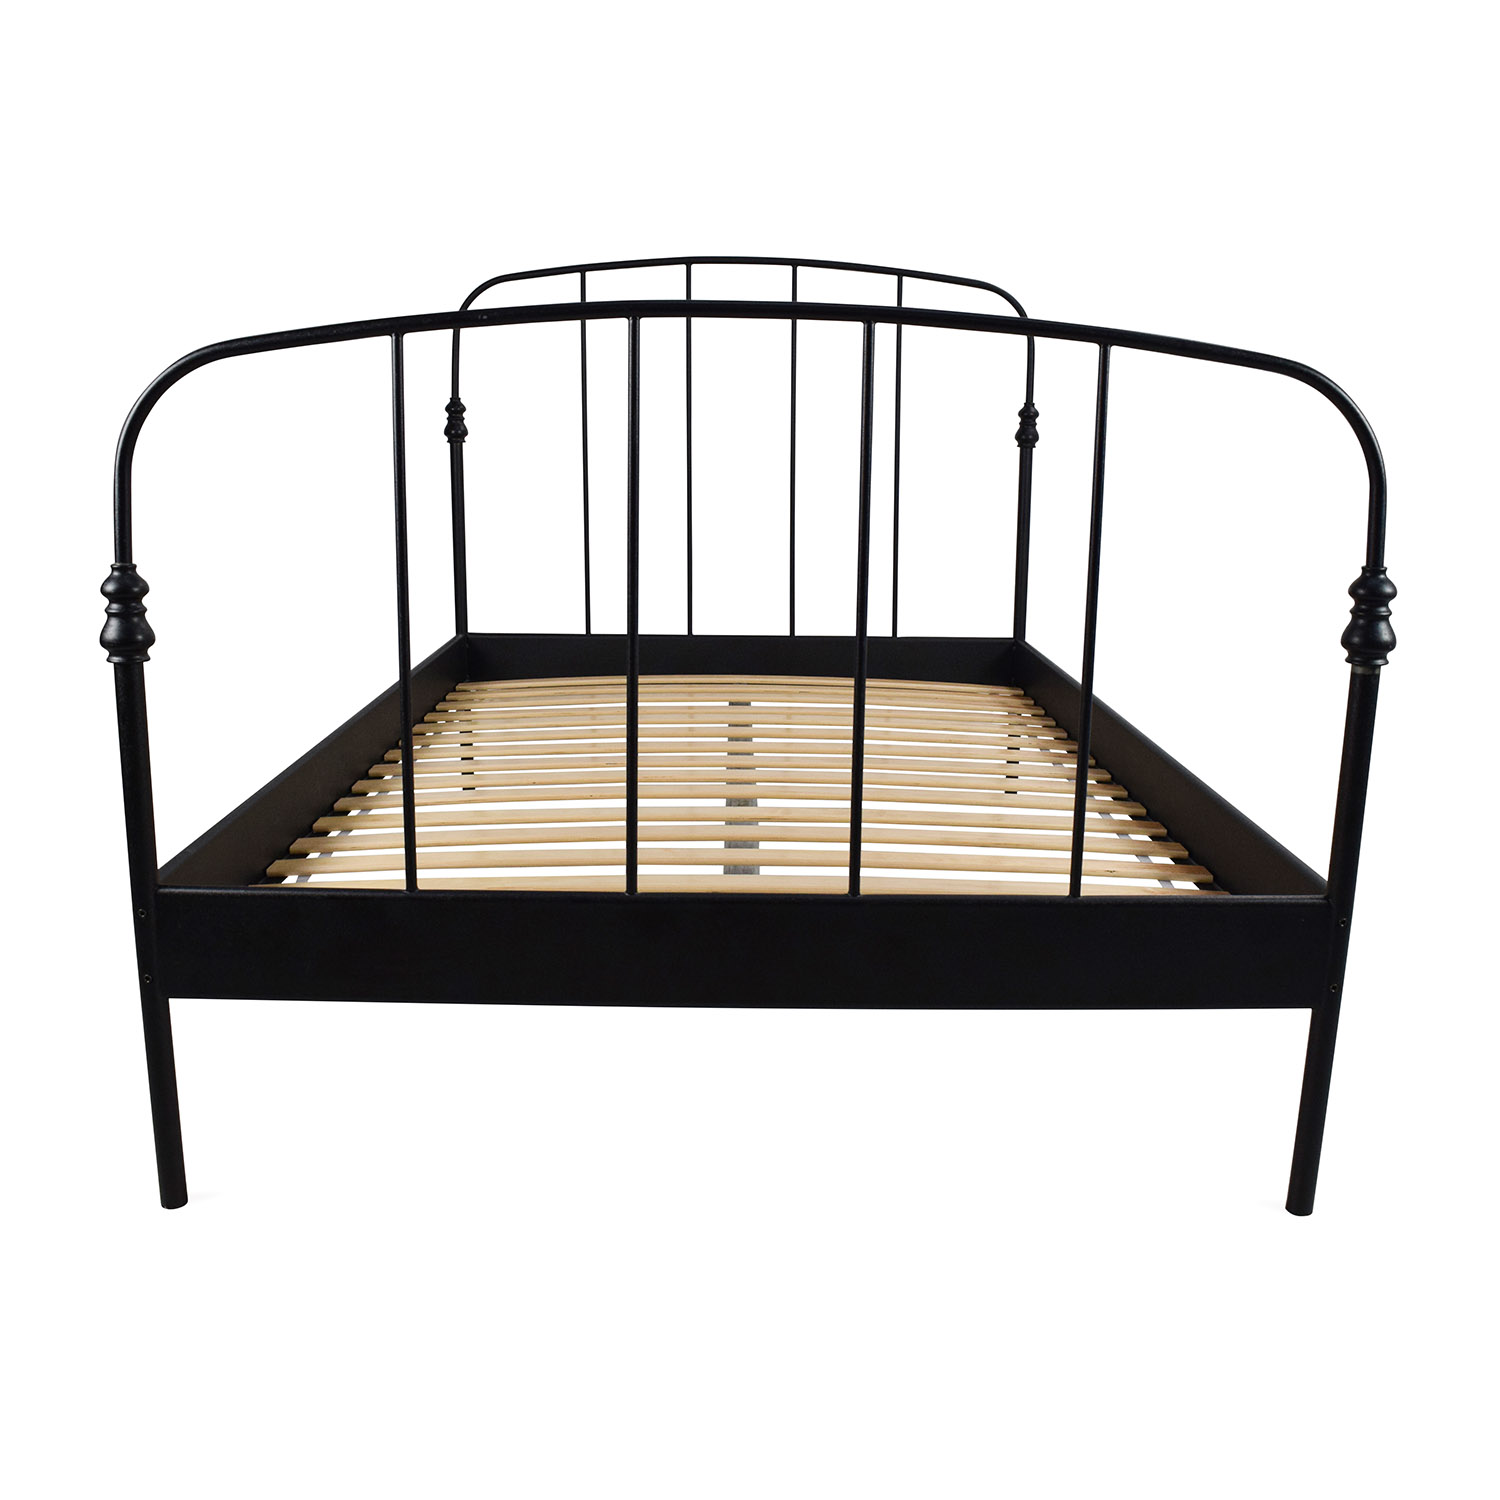 62% OFF - IKEA IKEA SVELVIK Full Size Black Bed Frame / Beds